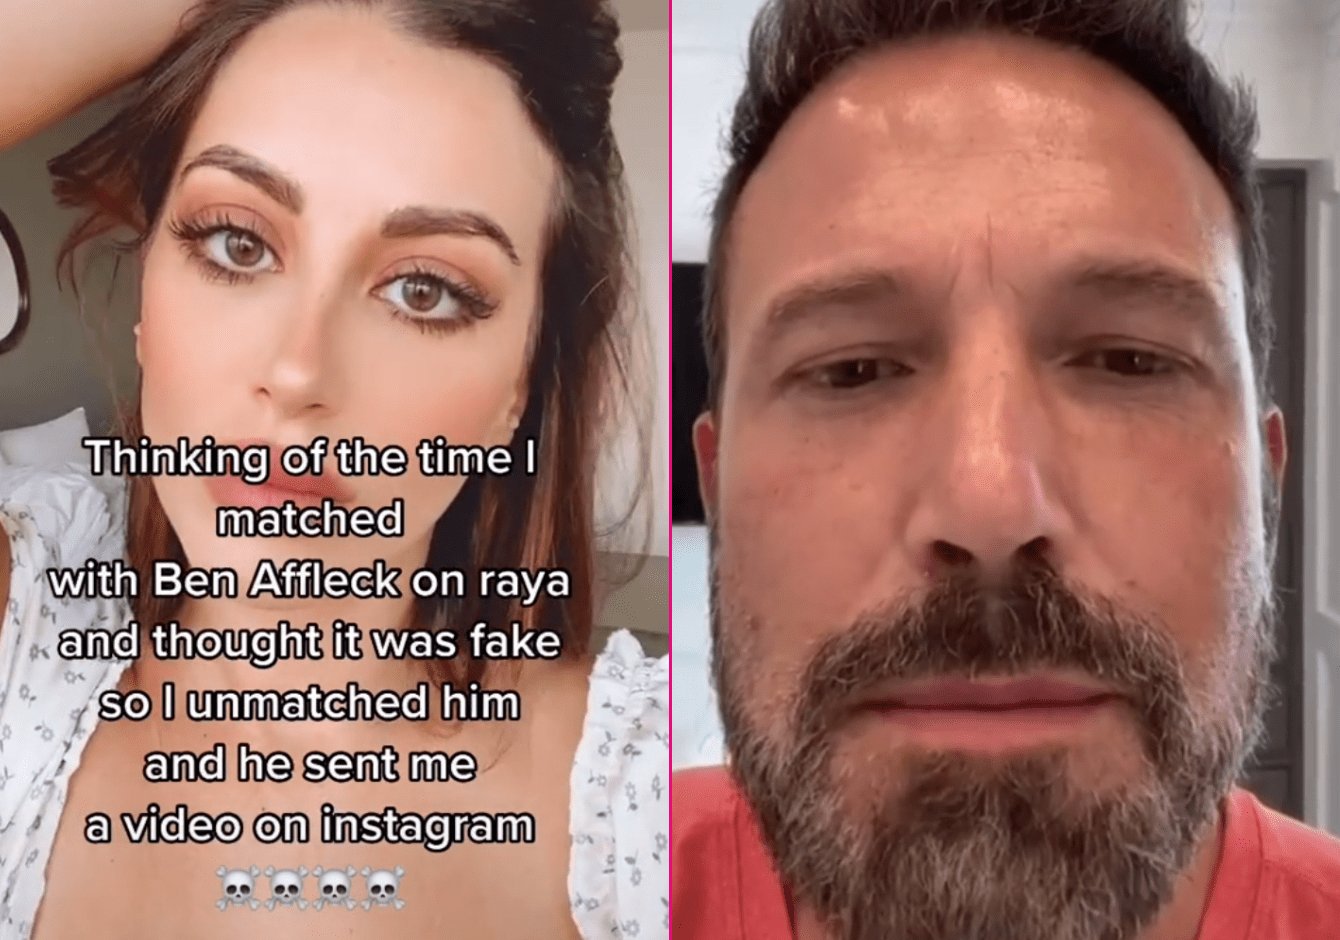 Ben Affleck responds to woman after she rejects him on data app